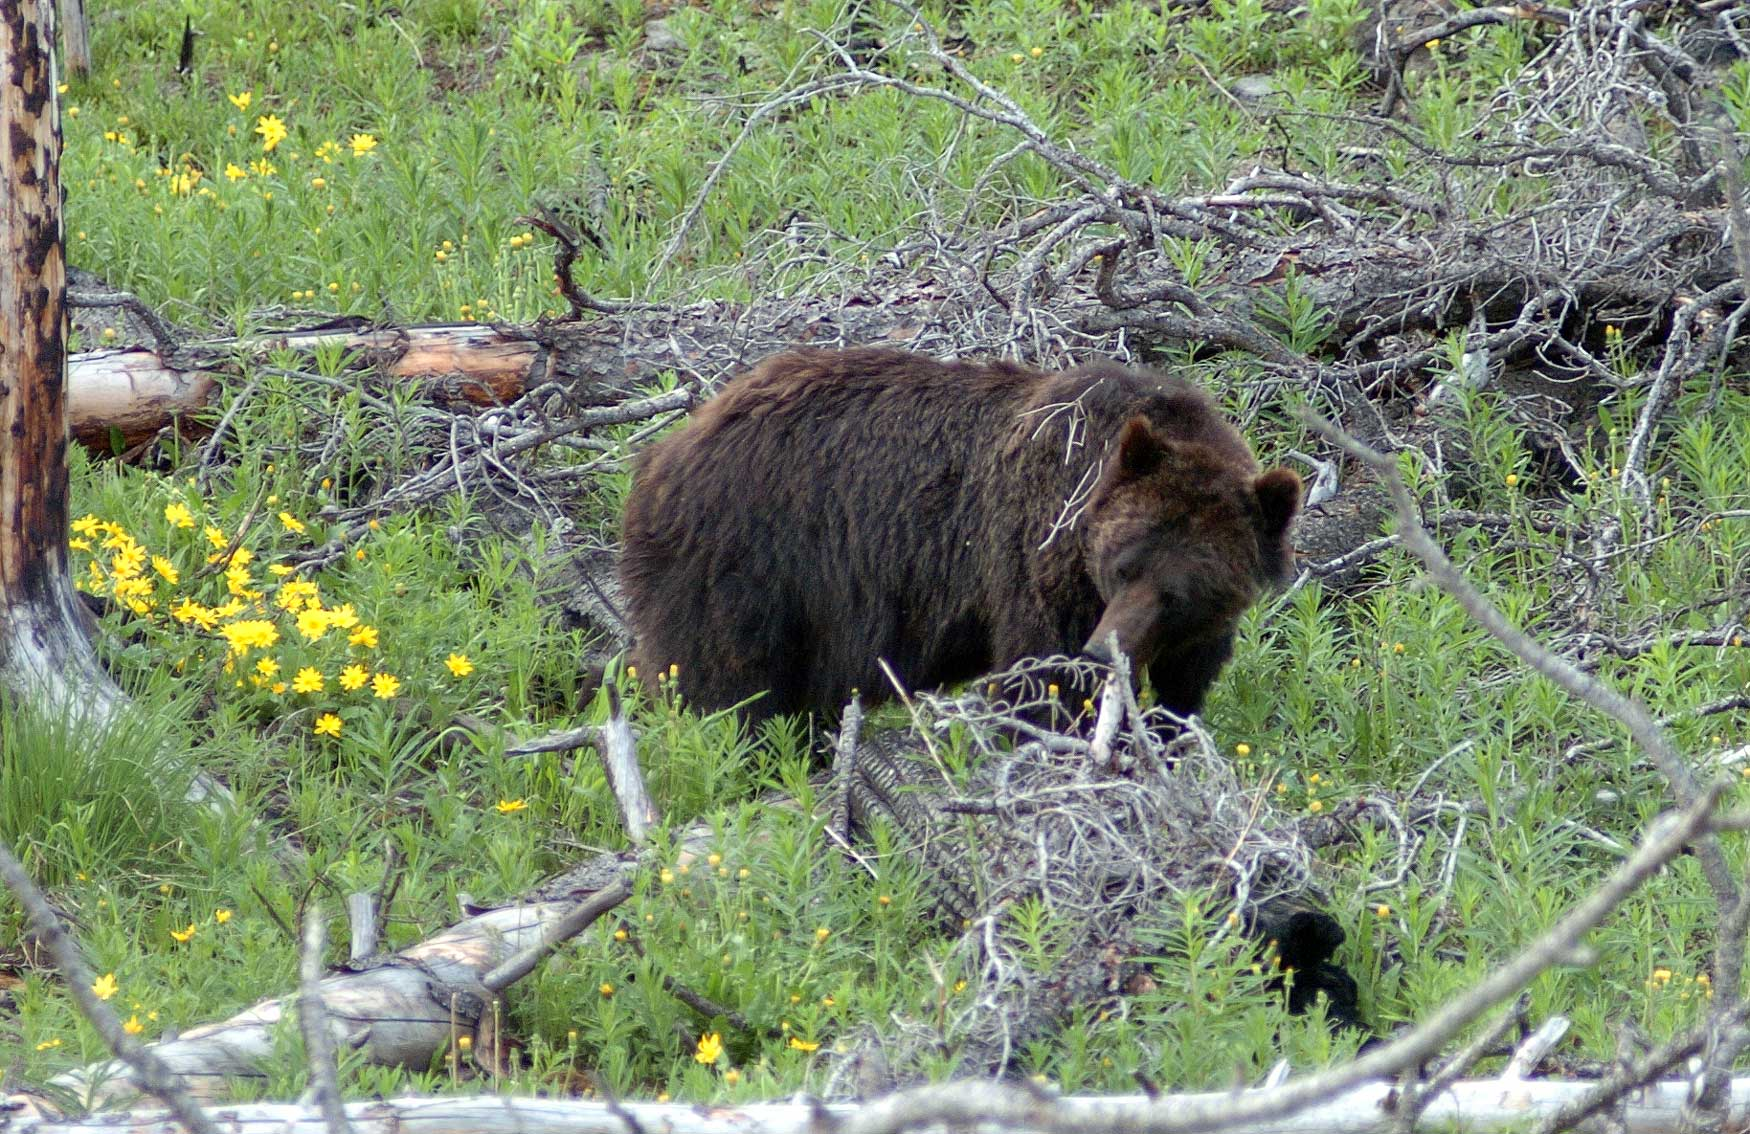 A subadult grizzly bear scans the ground near Cub Creek on the east side of Yellowstone National Park. (Yellowstone Gate file photo by Ruffin Prevost - click to enlarge)